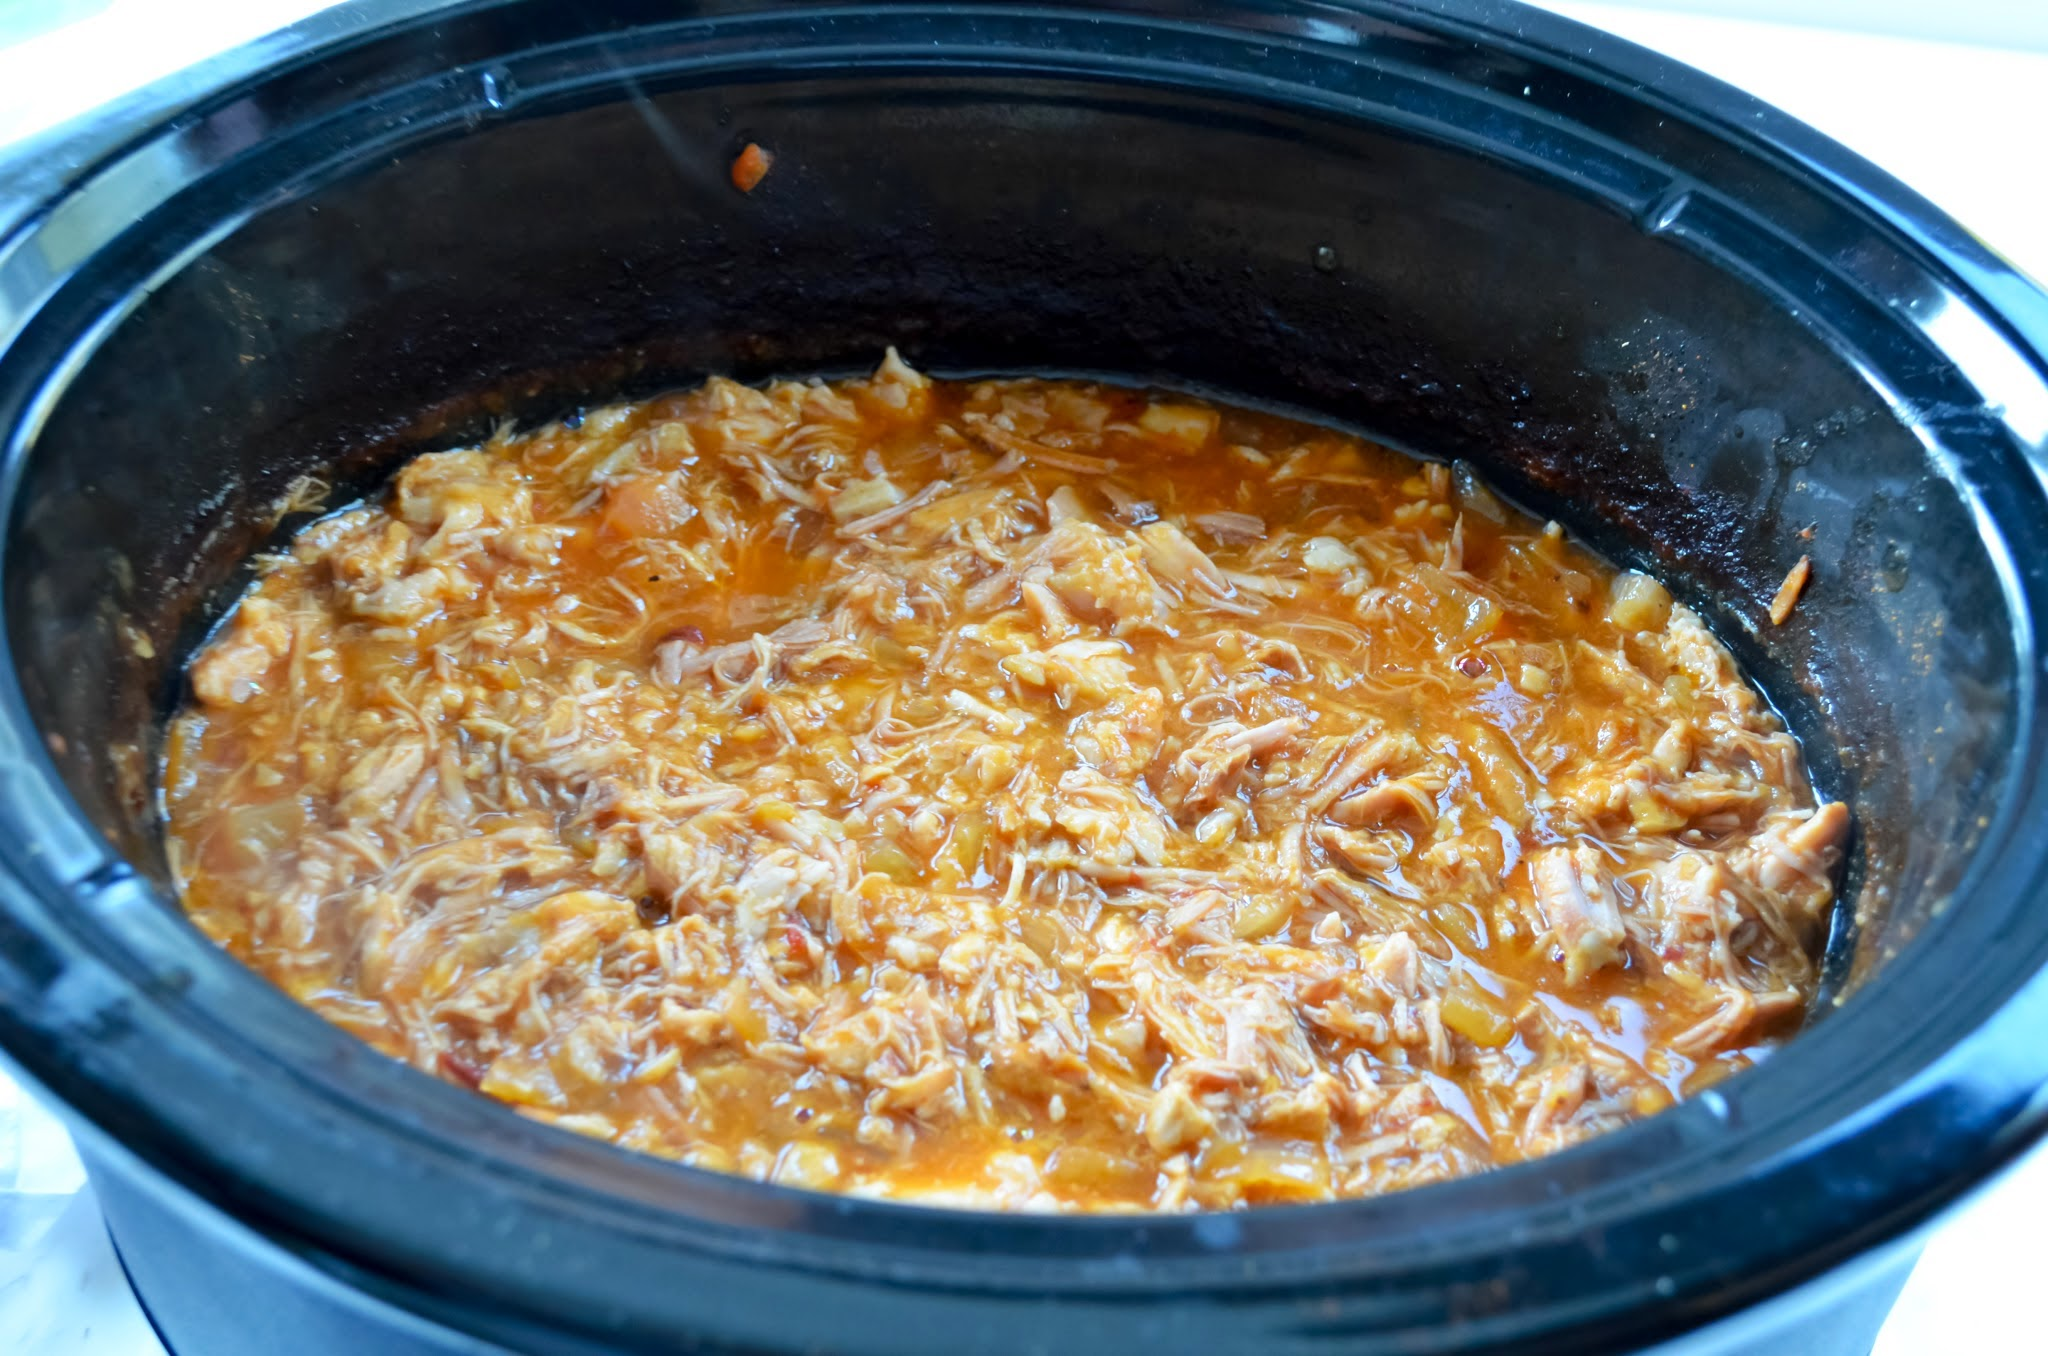 Slow-Cooked-Peach-Bourbon-Bbq-Pulled-Pork-Recipe-Pull-Forks.jpg